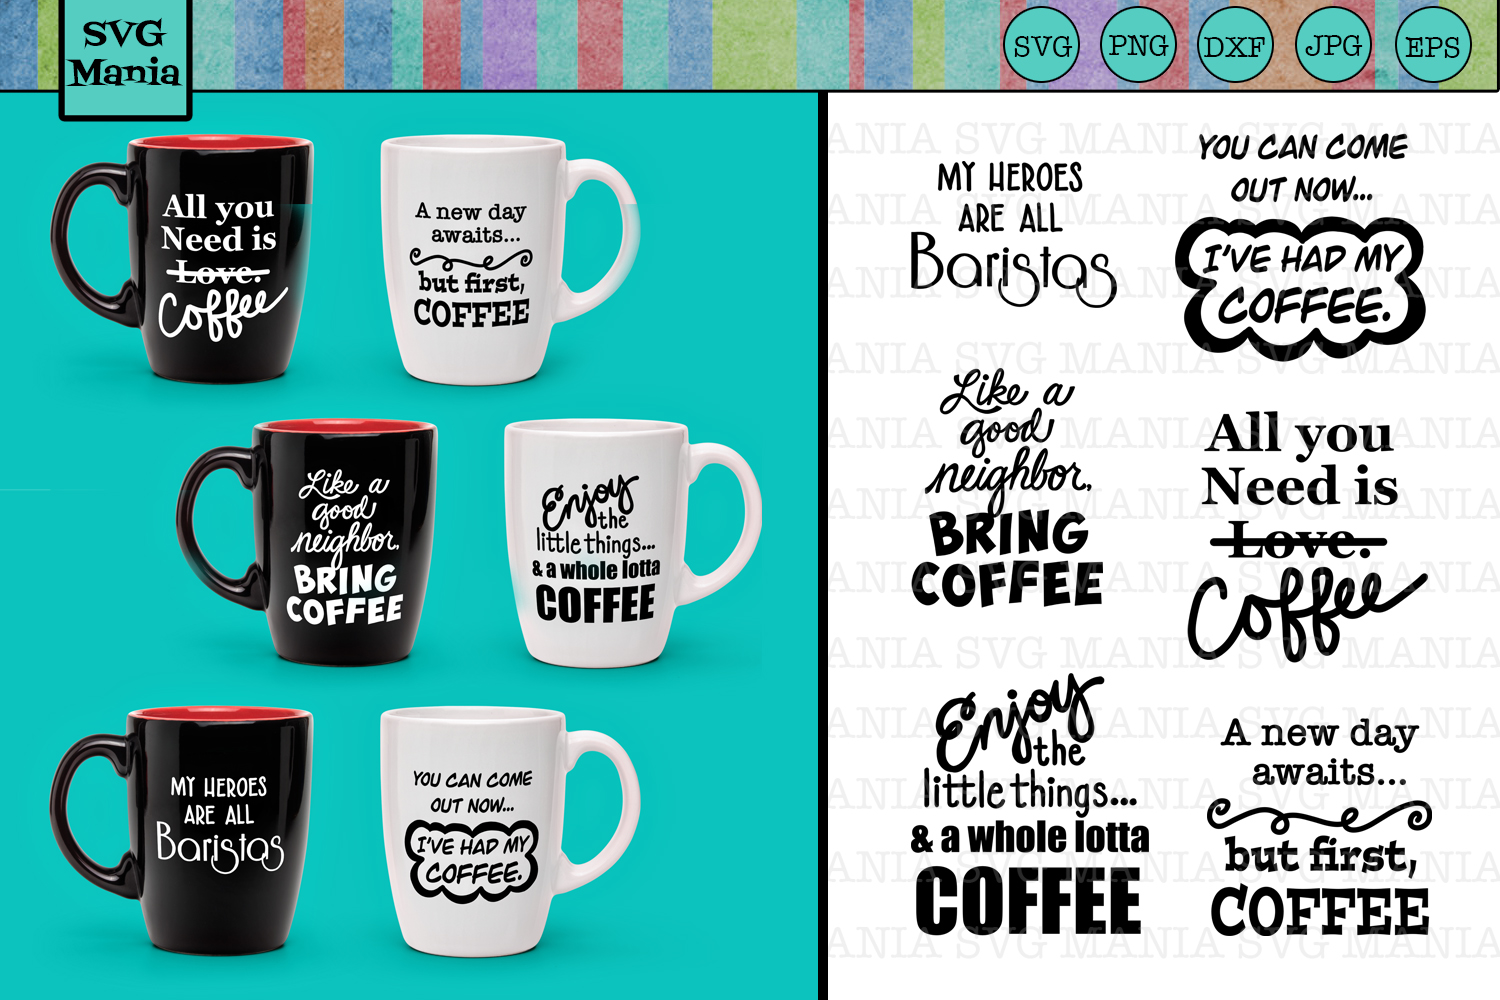 Coffee Saying SVG File Bundle, Funny Coffee SVG Files, SVG example image 1